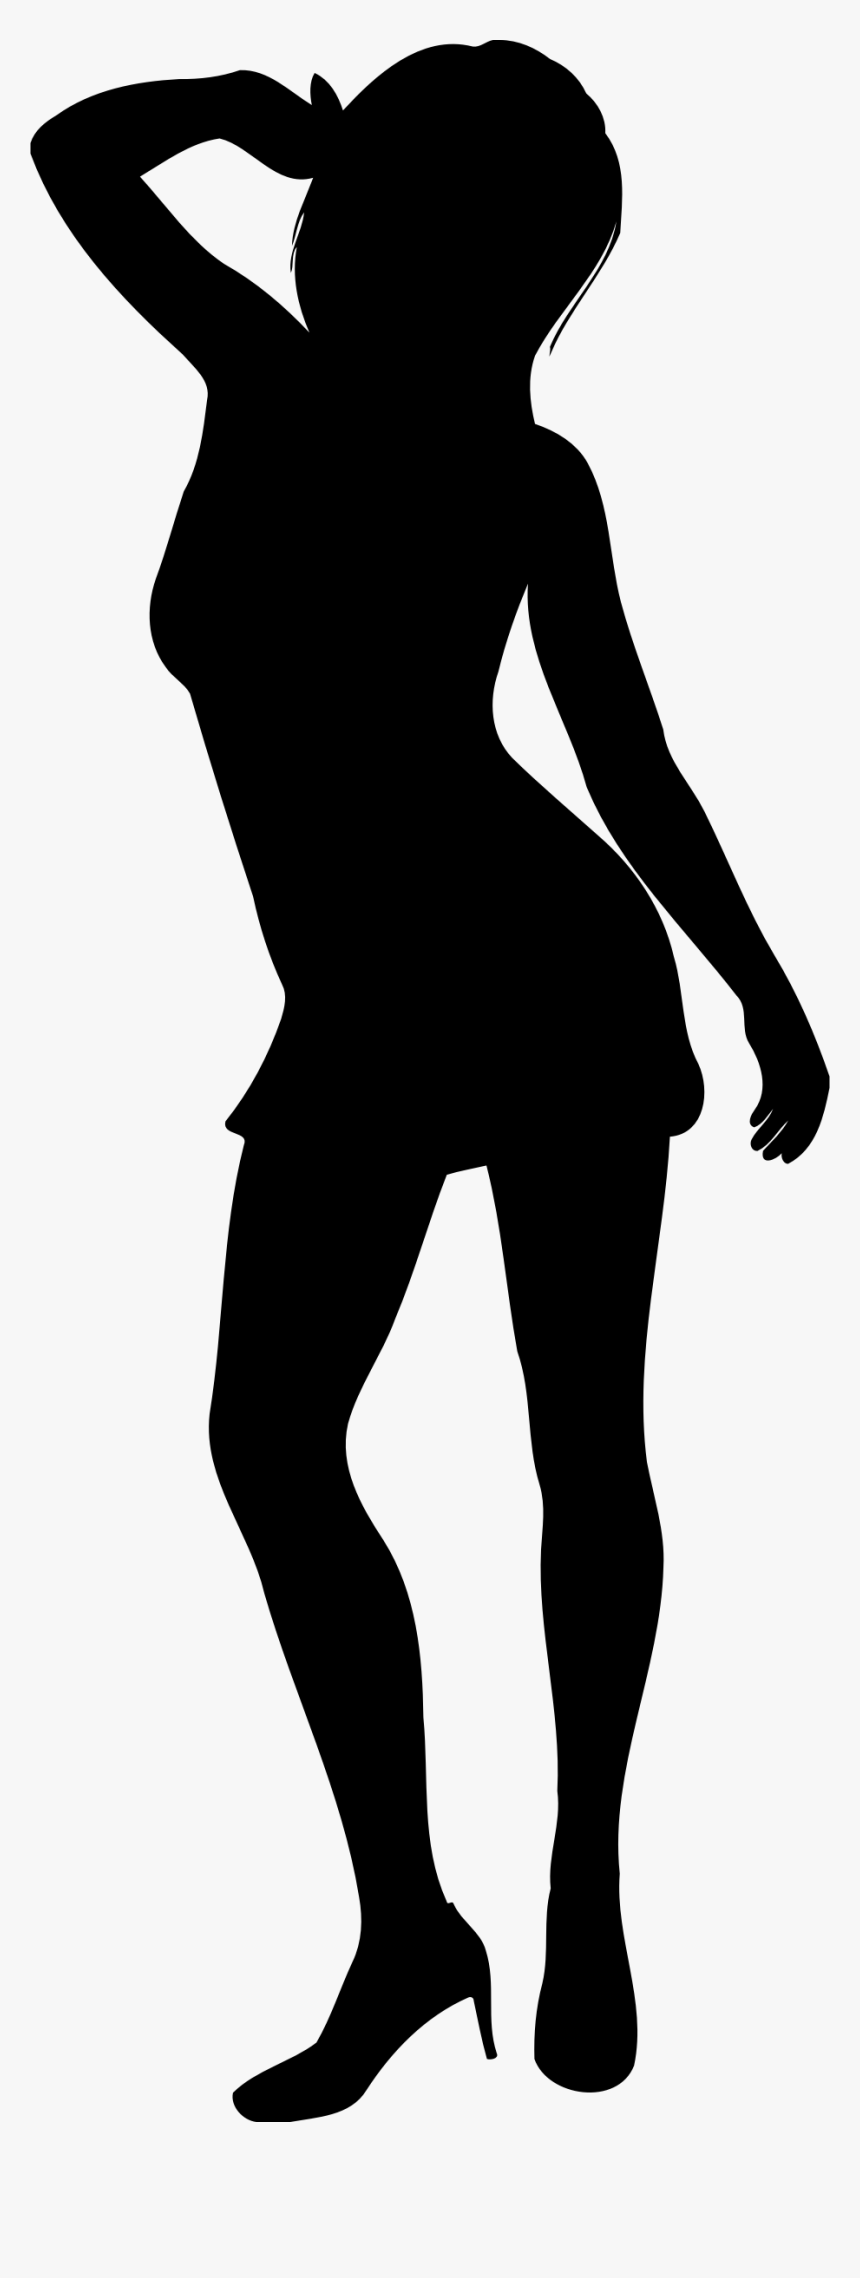 Transparent Waist Clipart - Silhouette Model Poses Png, Png Download, Free Download